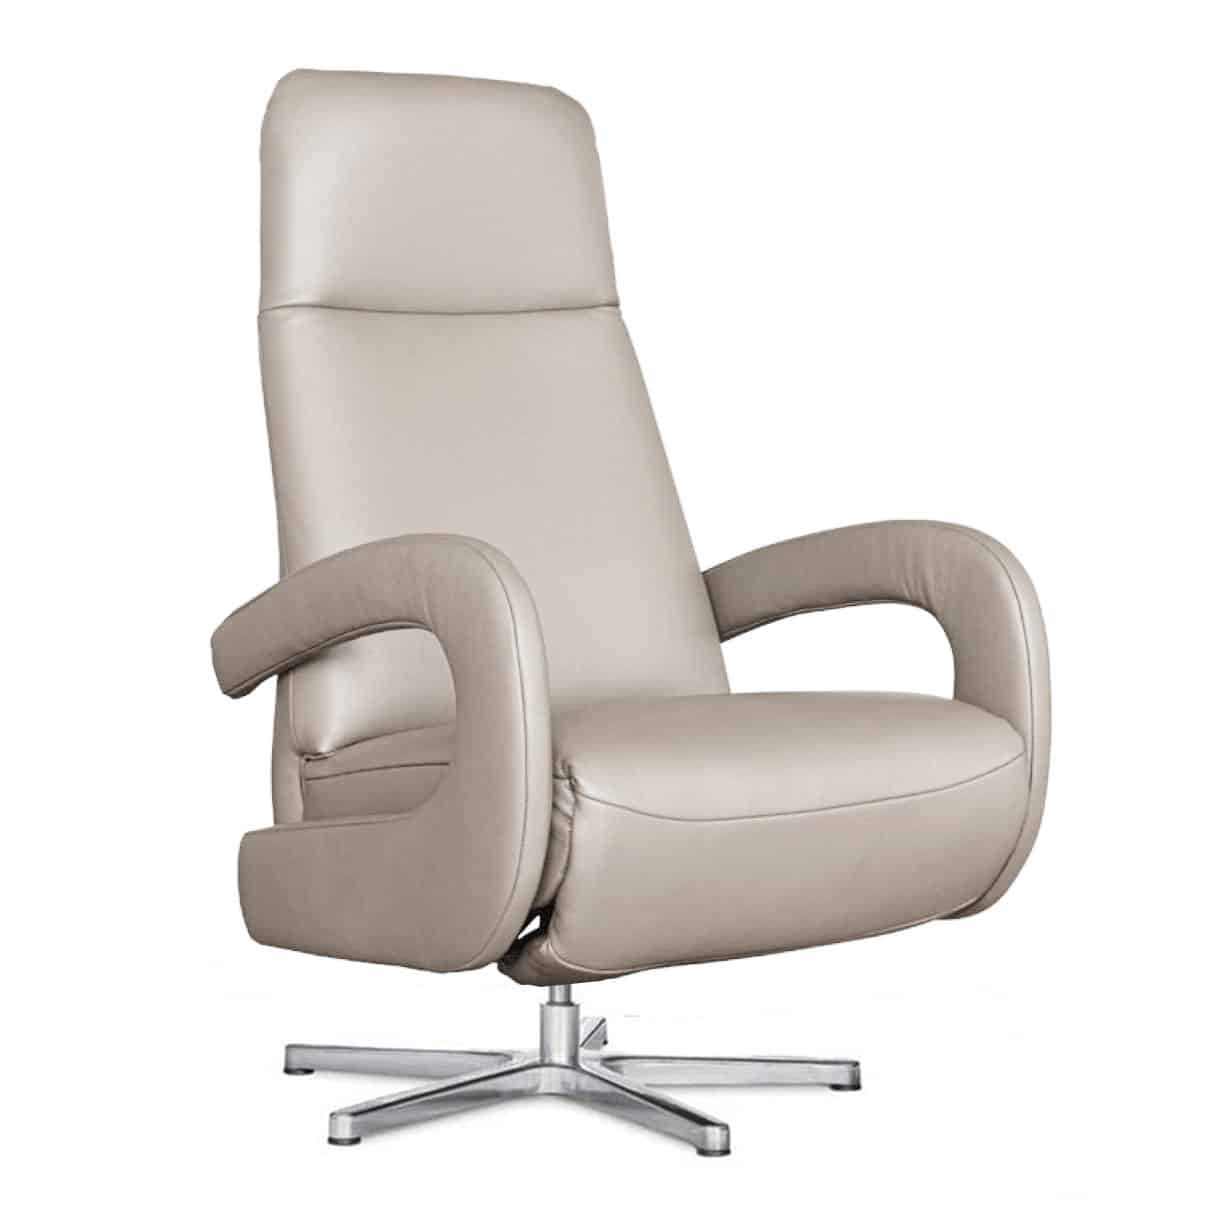 Sessel-Select-taupe-manuell